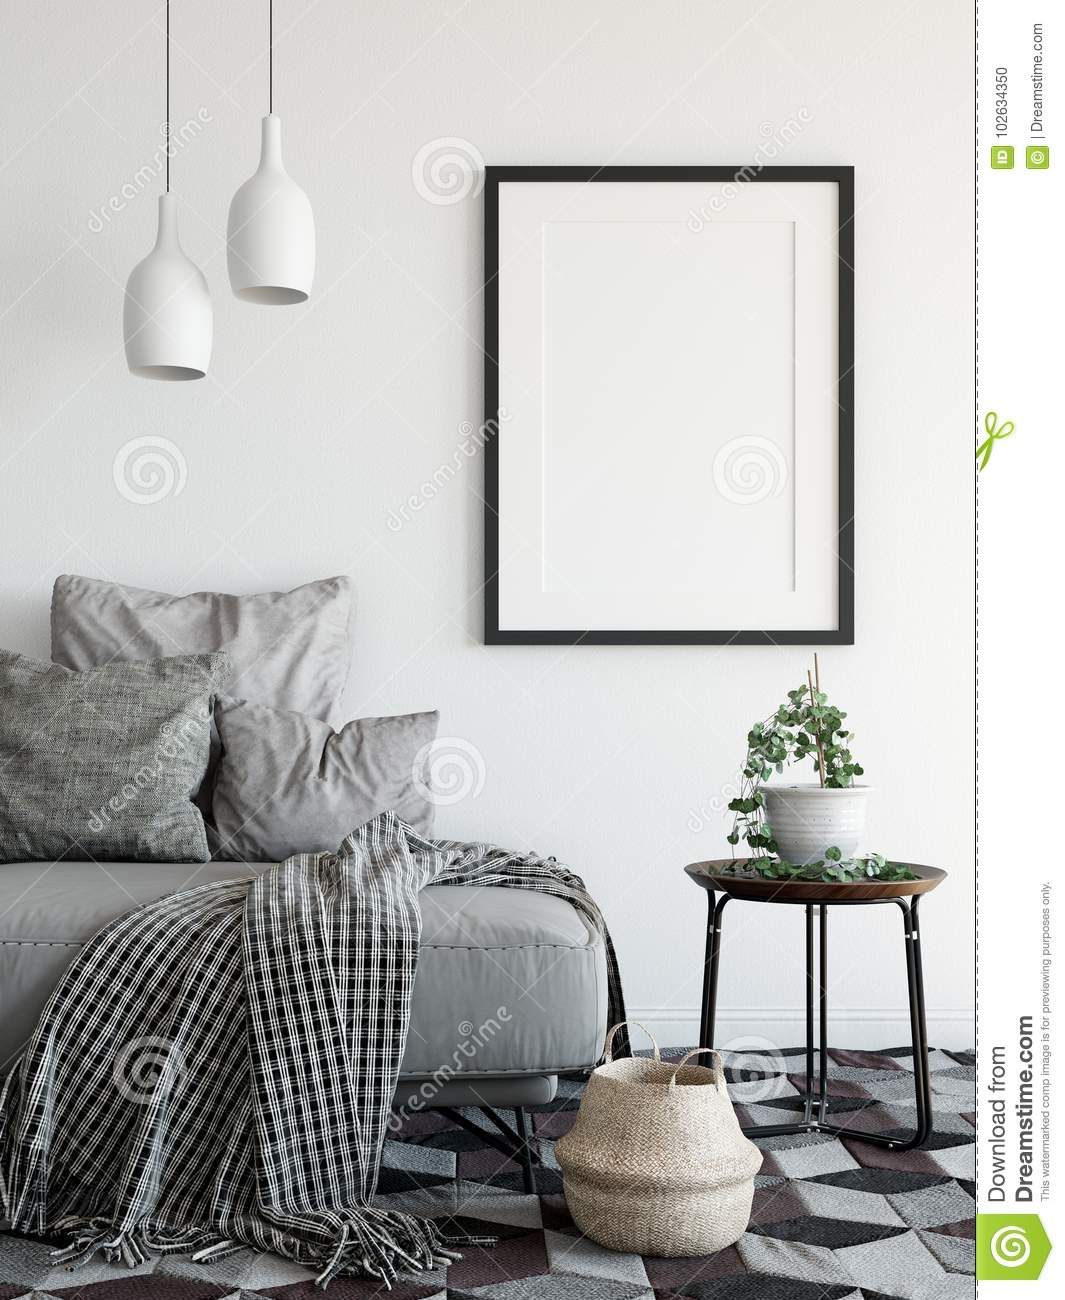 Mock Up Posters In Living Room Interior. Interior Scandinavian Style ...